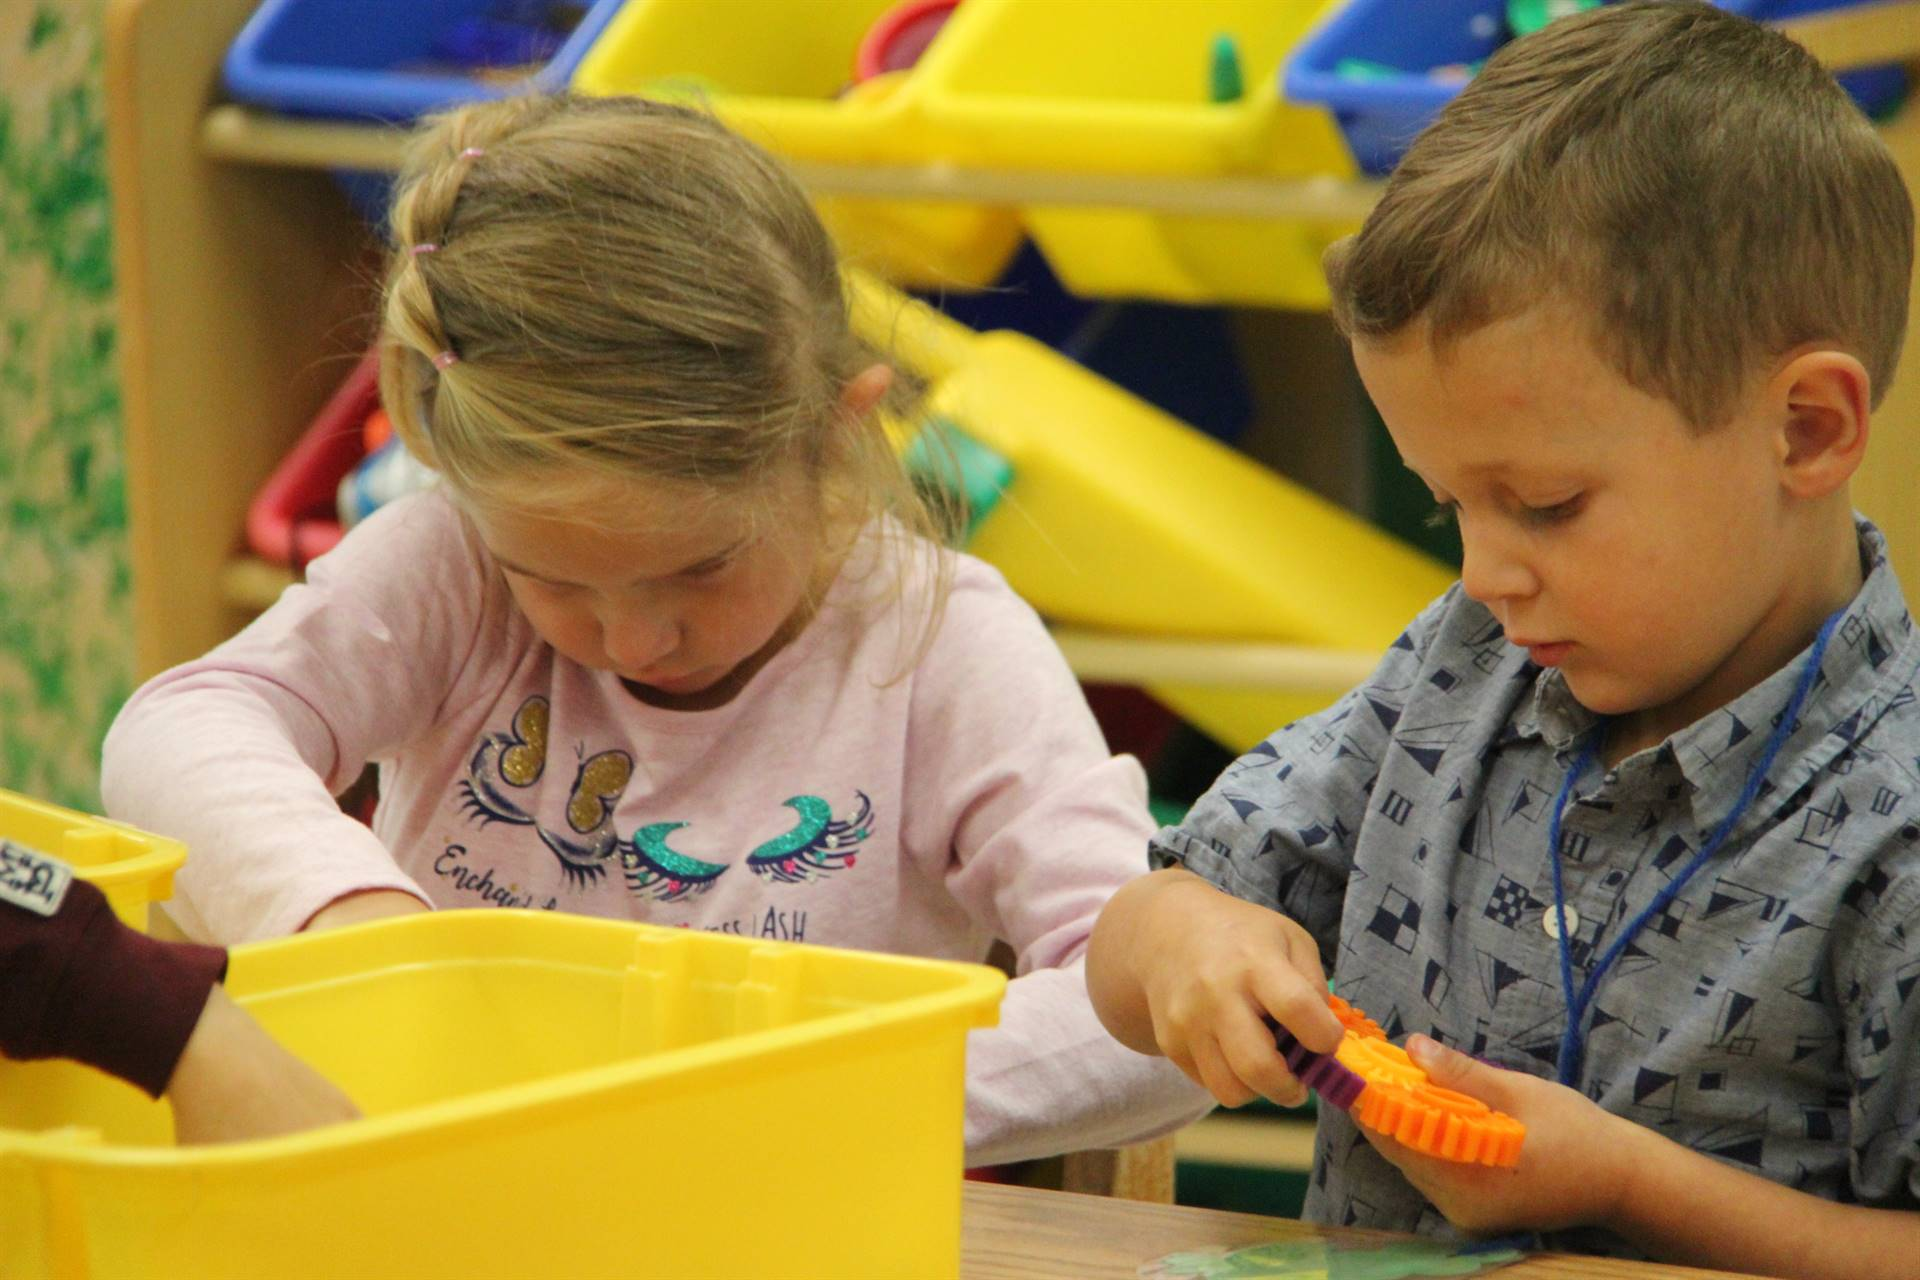 two pre k students build with connectors on first day